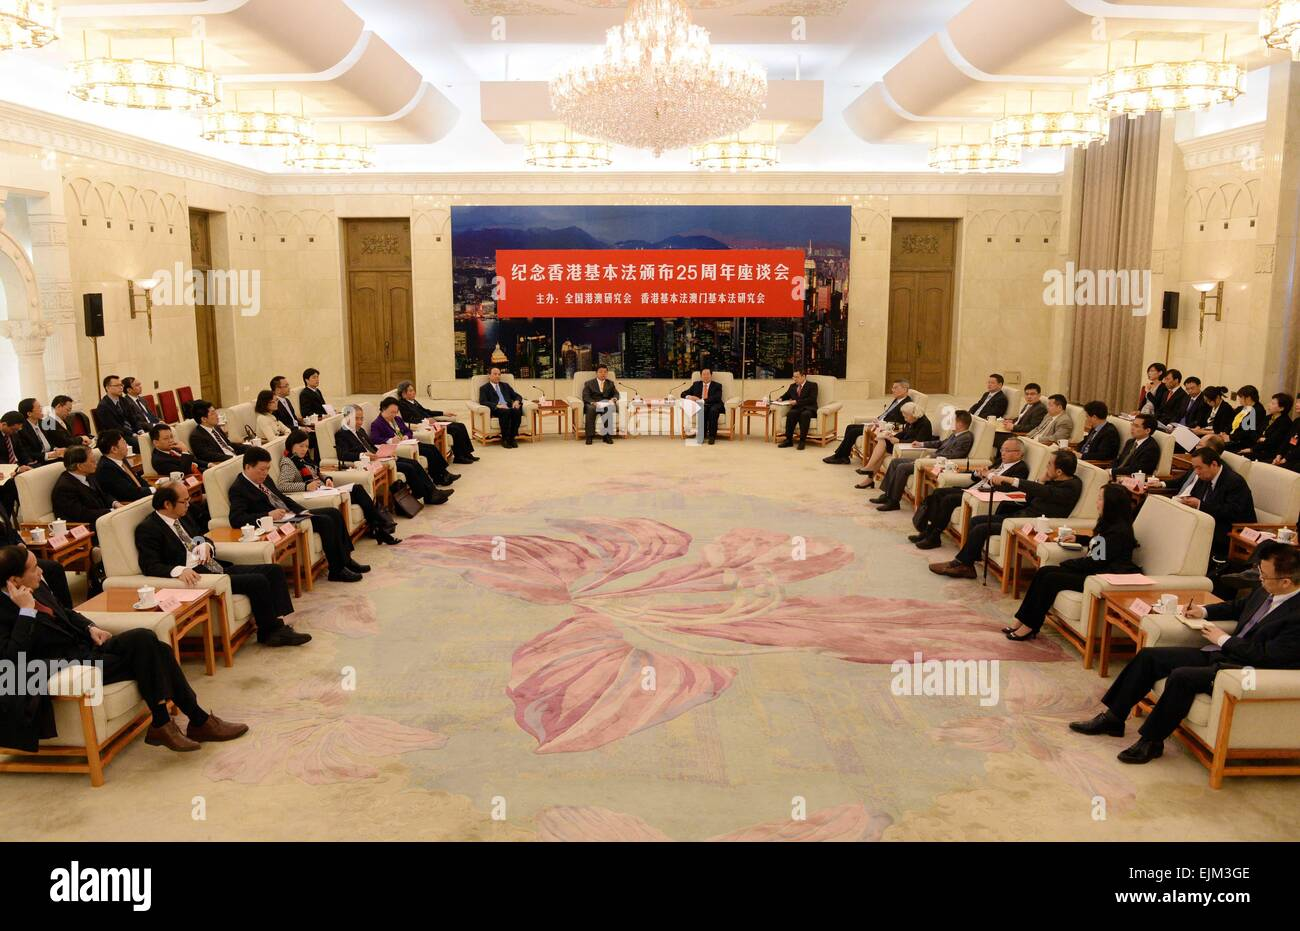 Beijing, China. 29th Mar, 2015. A symposium is held to mark the 25th anniversary of the promulgation of the Basic - Stock Image